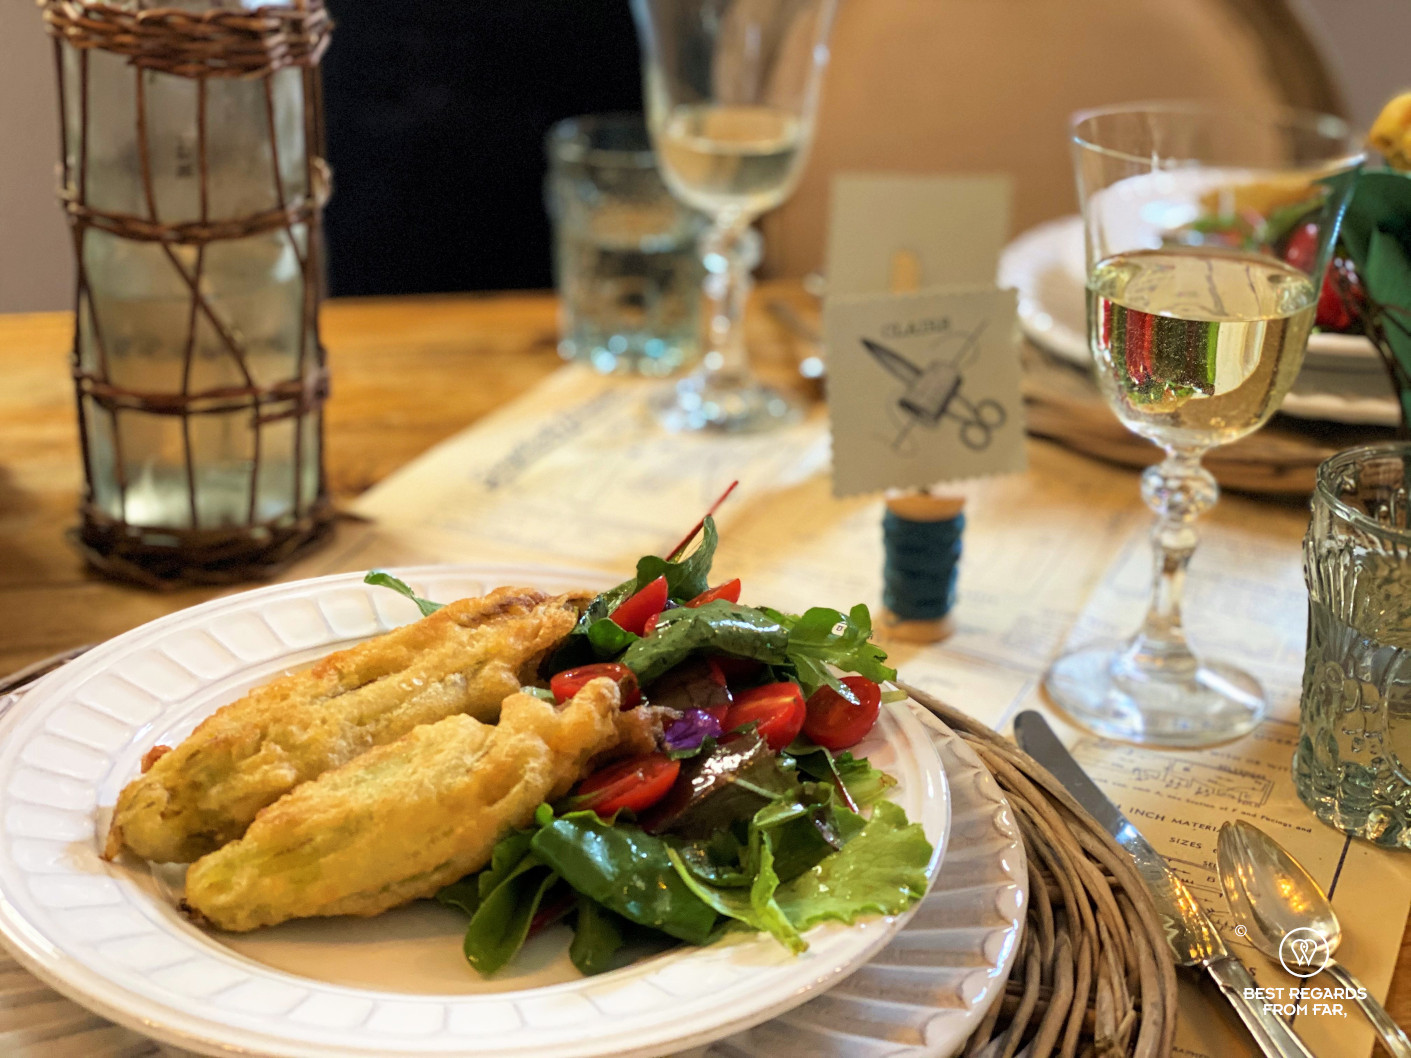 Fried zucchini flowers and salad served on a white plate with white wine